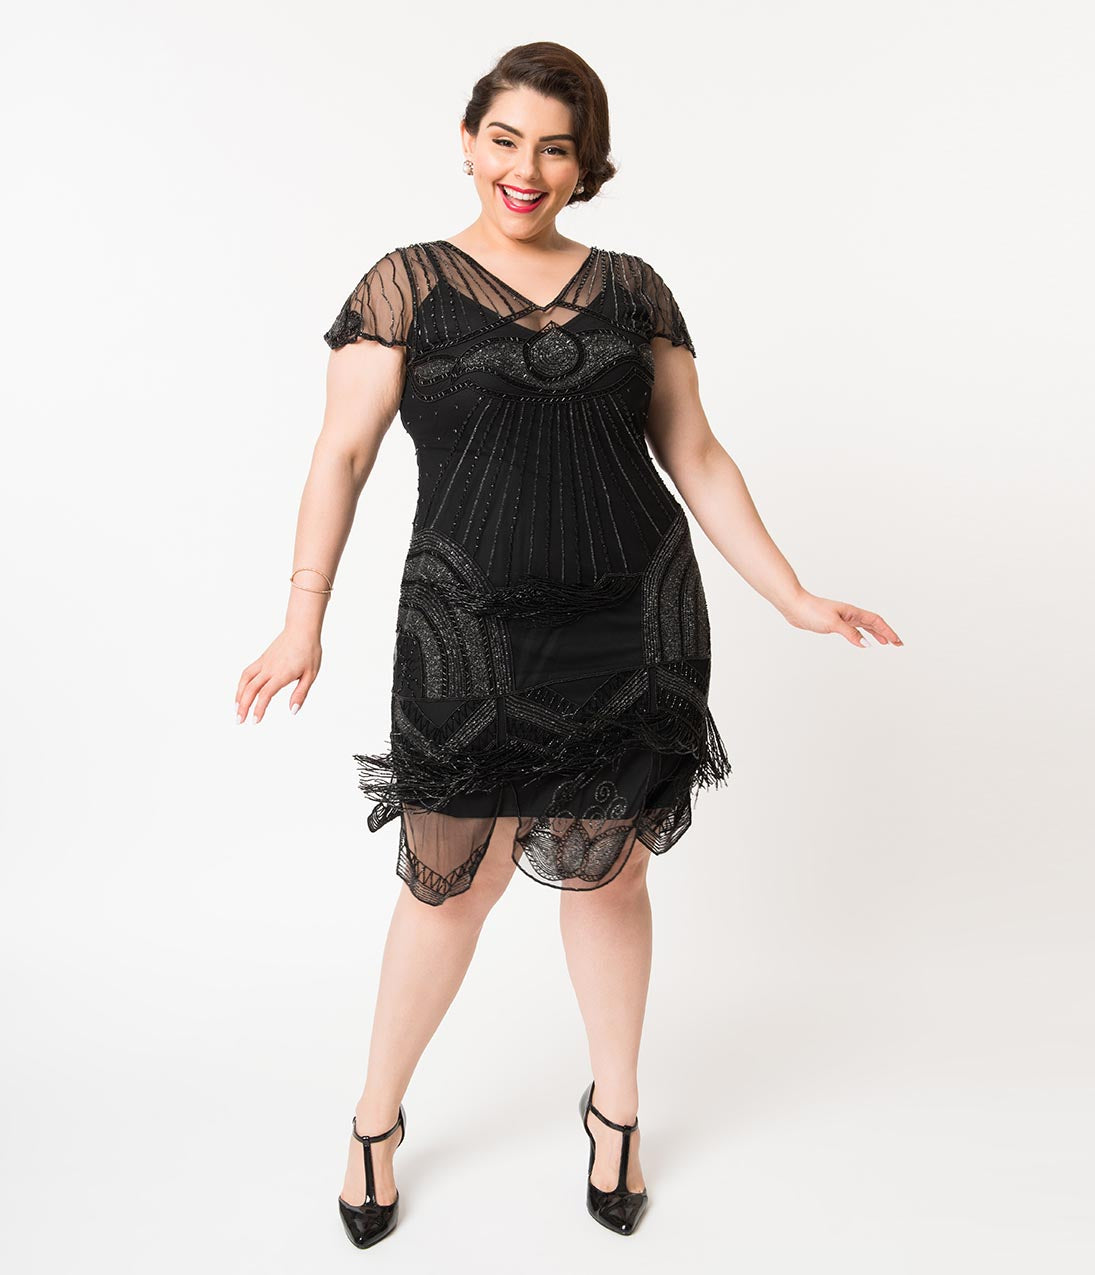 Roaring Twenties 20s Fashion Guide Plus Size 1920S Style Black Beaded Deco Cap Sleeve Beatrice Flapper Dress $198.00 AT vintagedancer.com